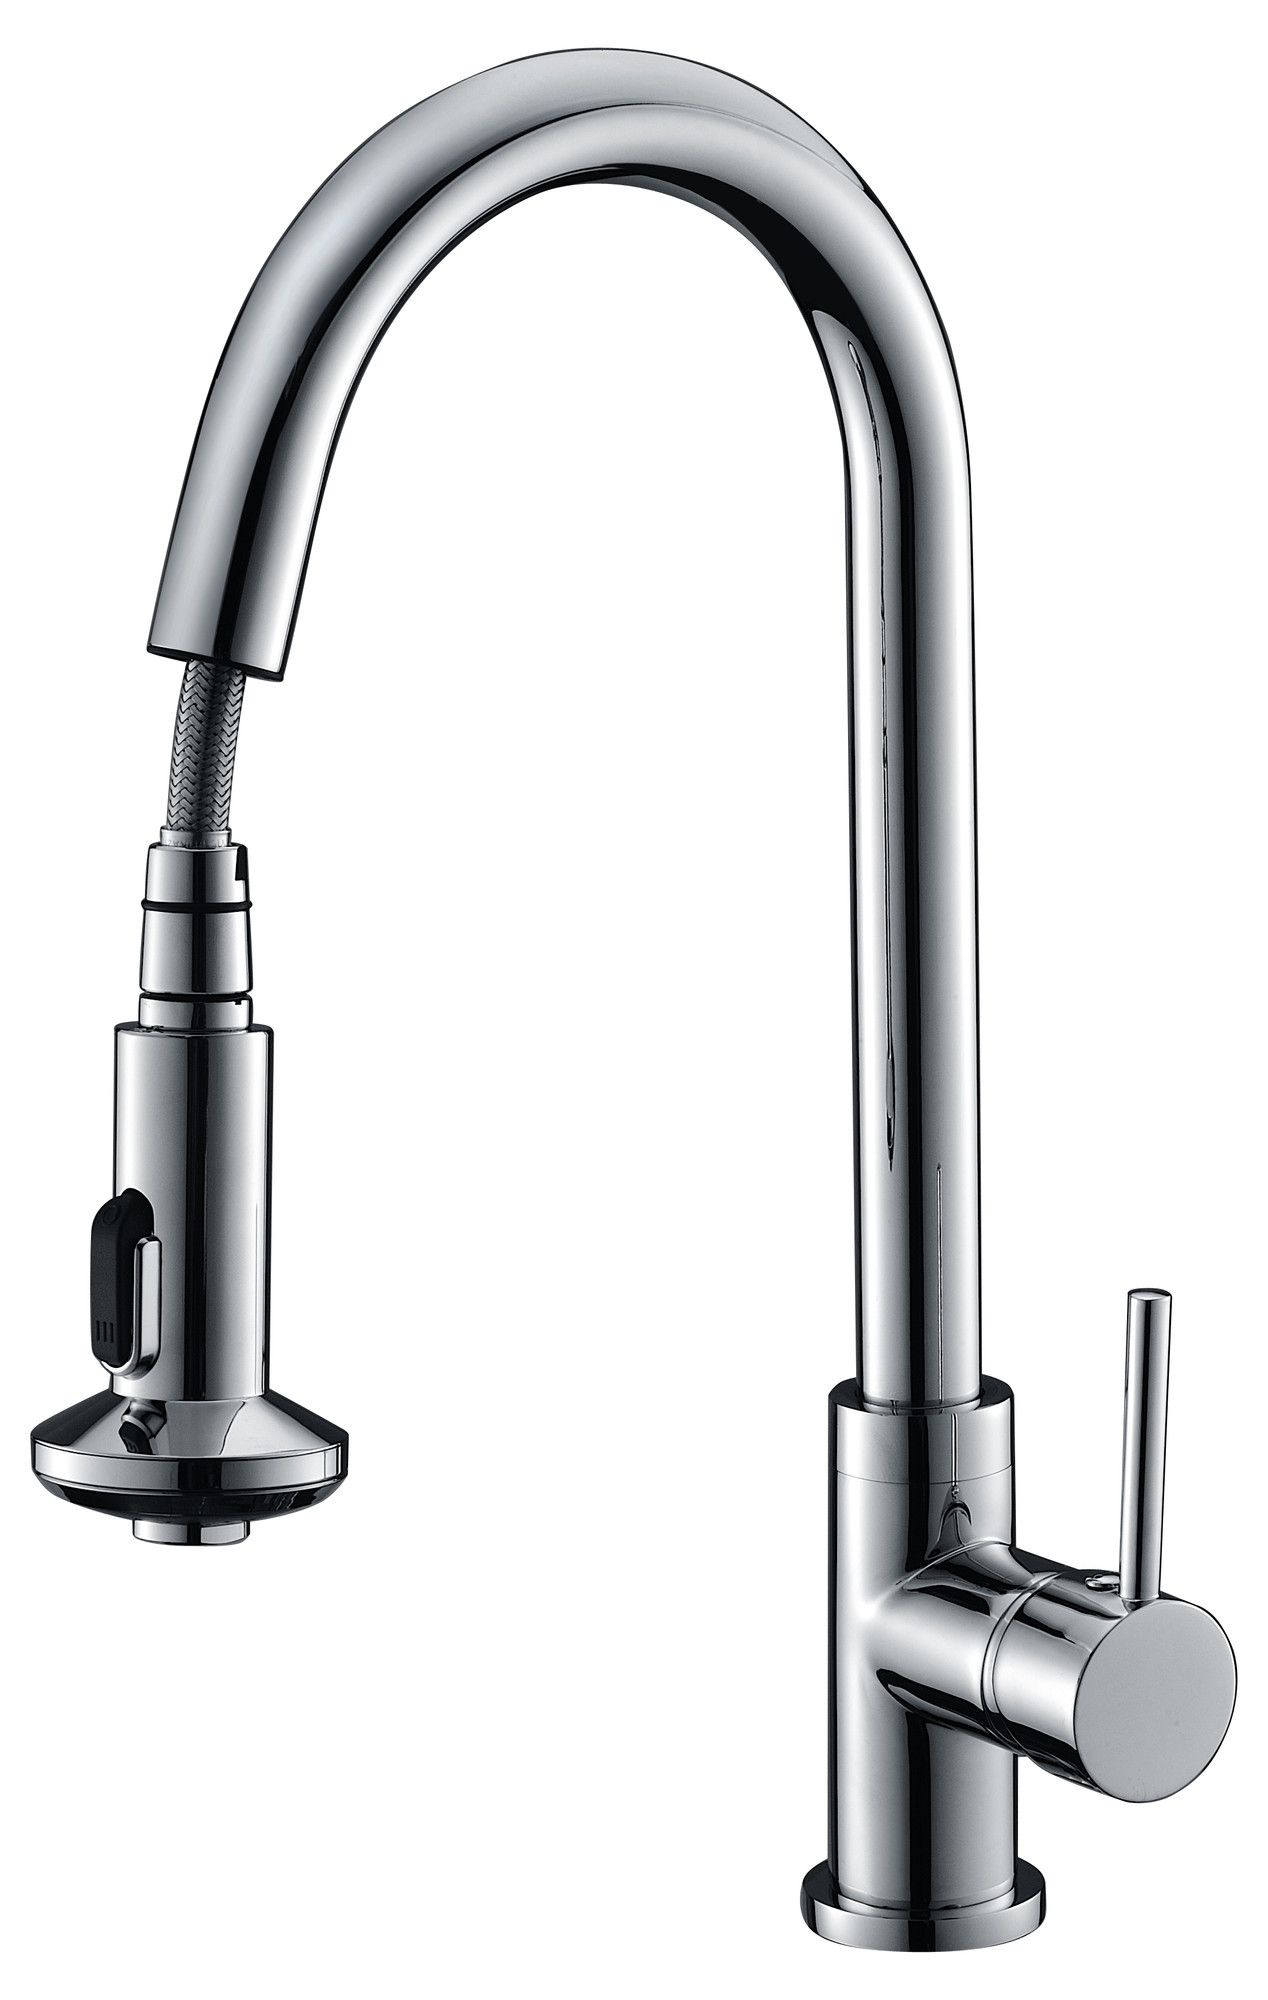 Basin Mixer Extendable Tap Faucet Essential Home Supply ...